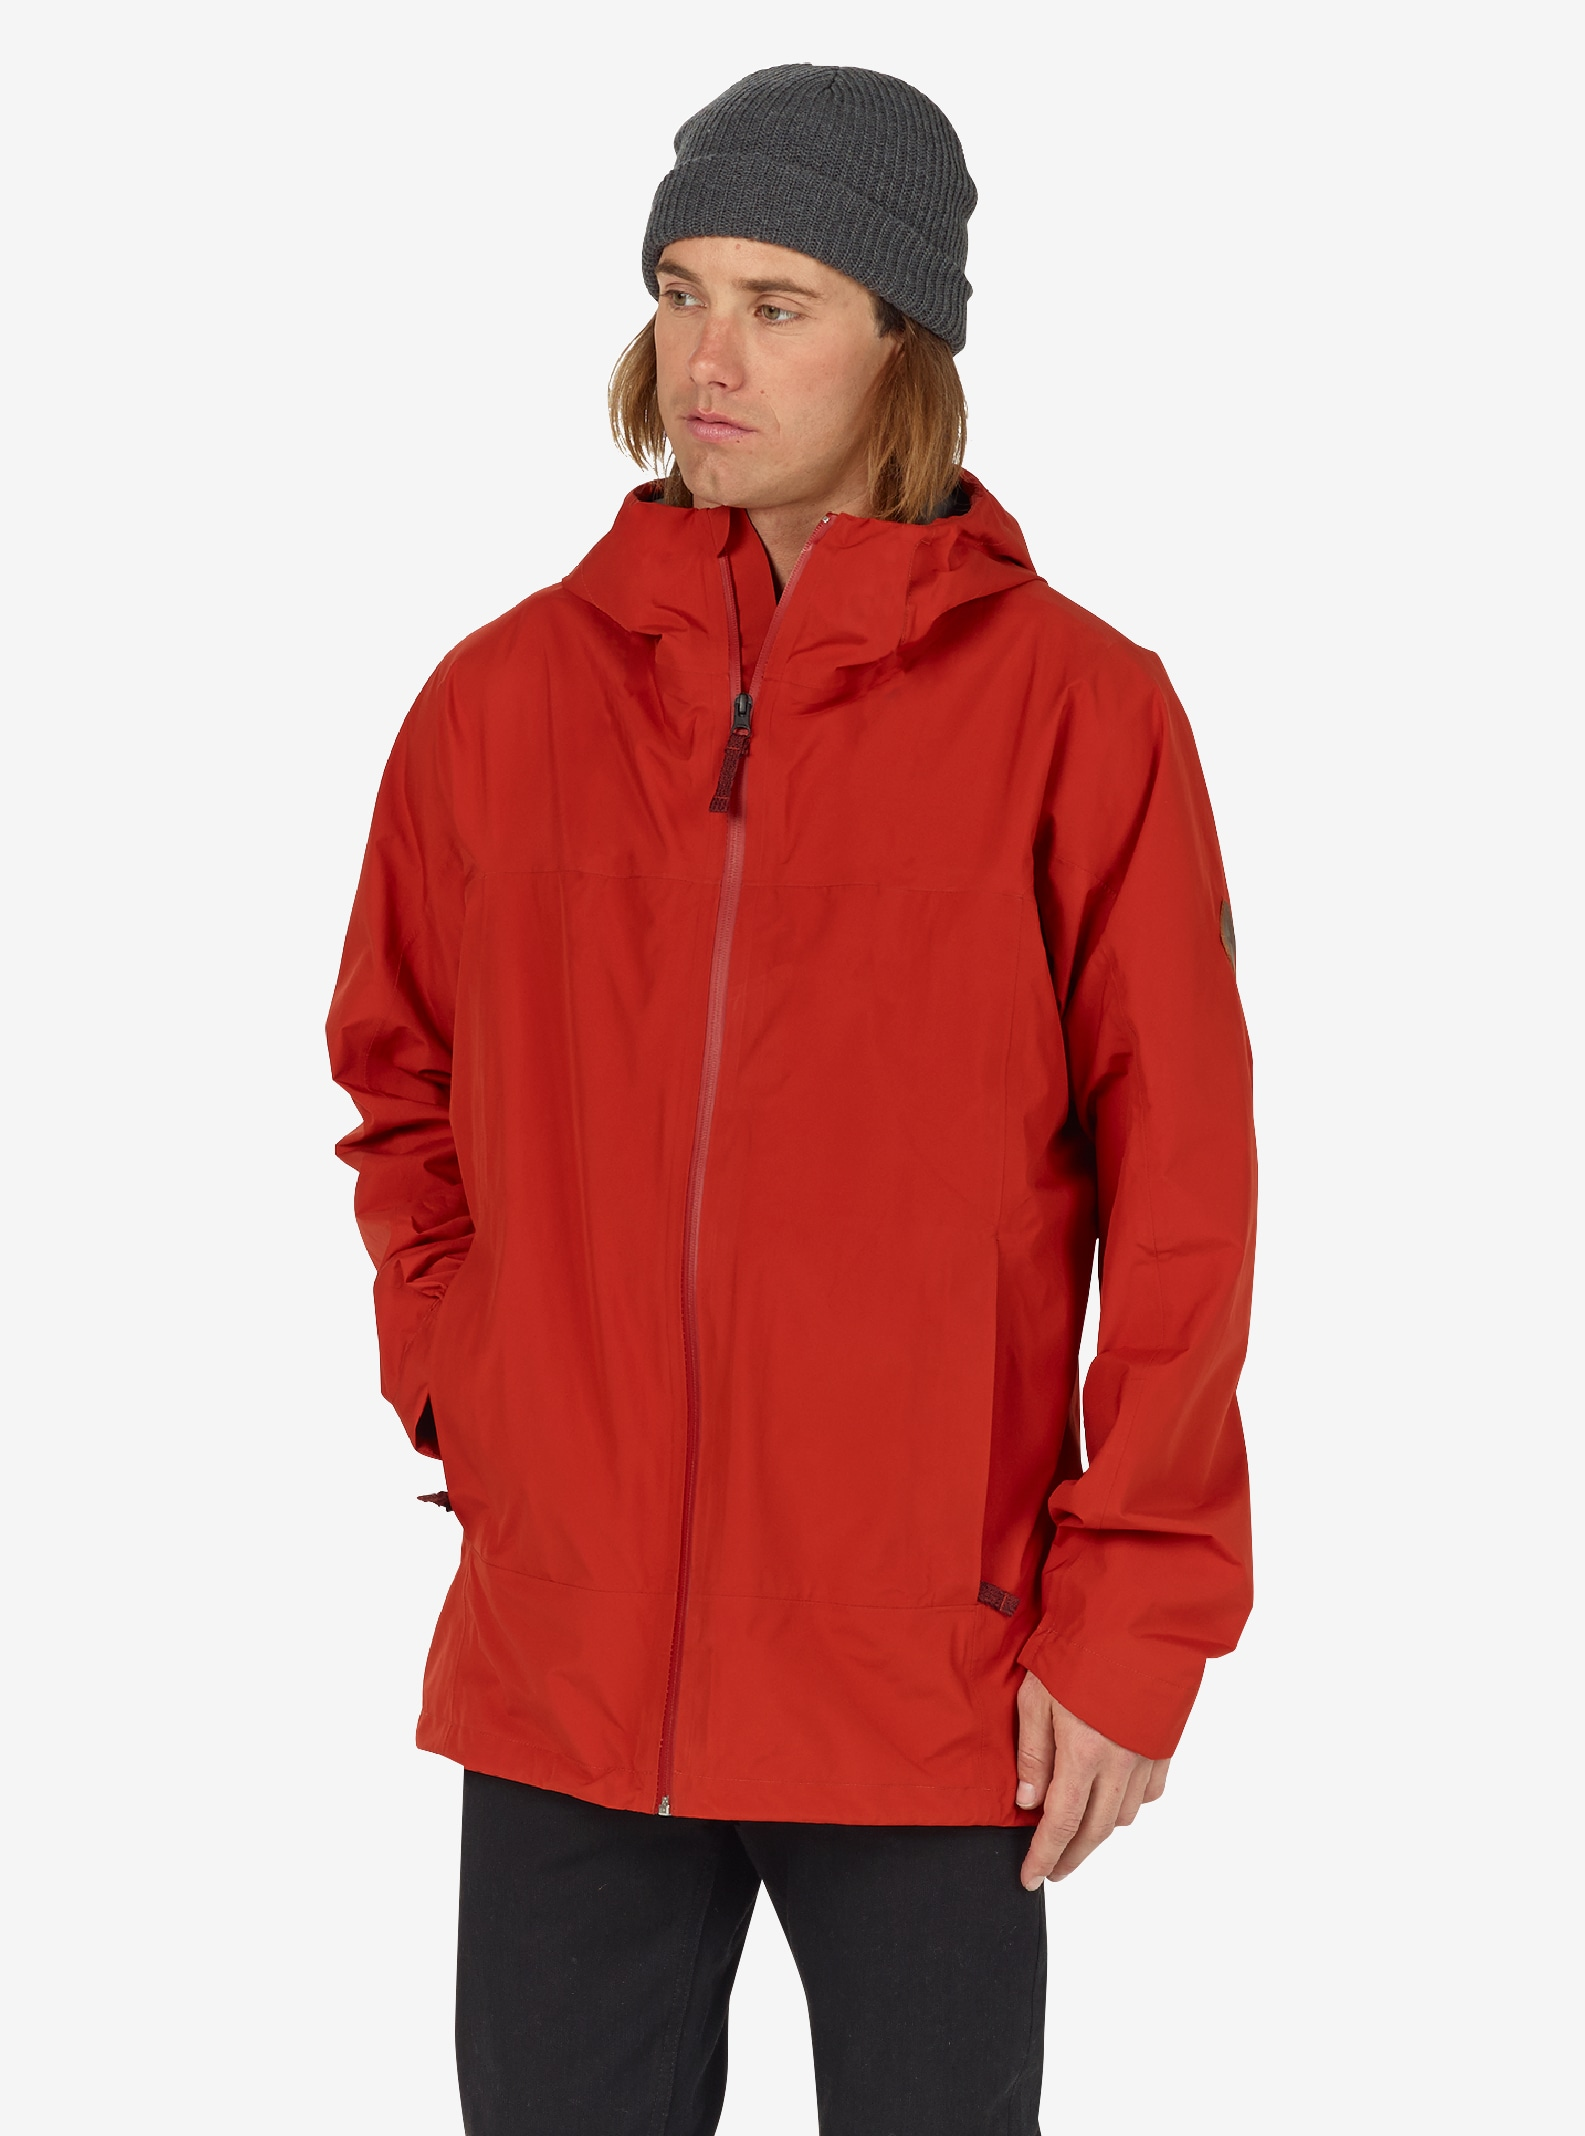 Men's Burton GORE‑TEX® 2L Packrite Jacket shown in Bitters